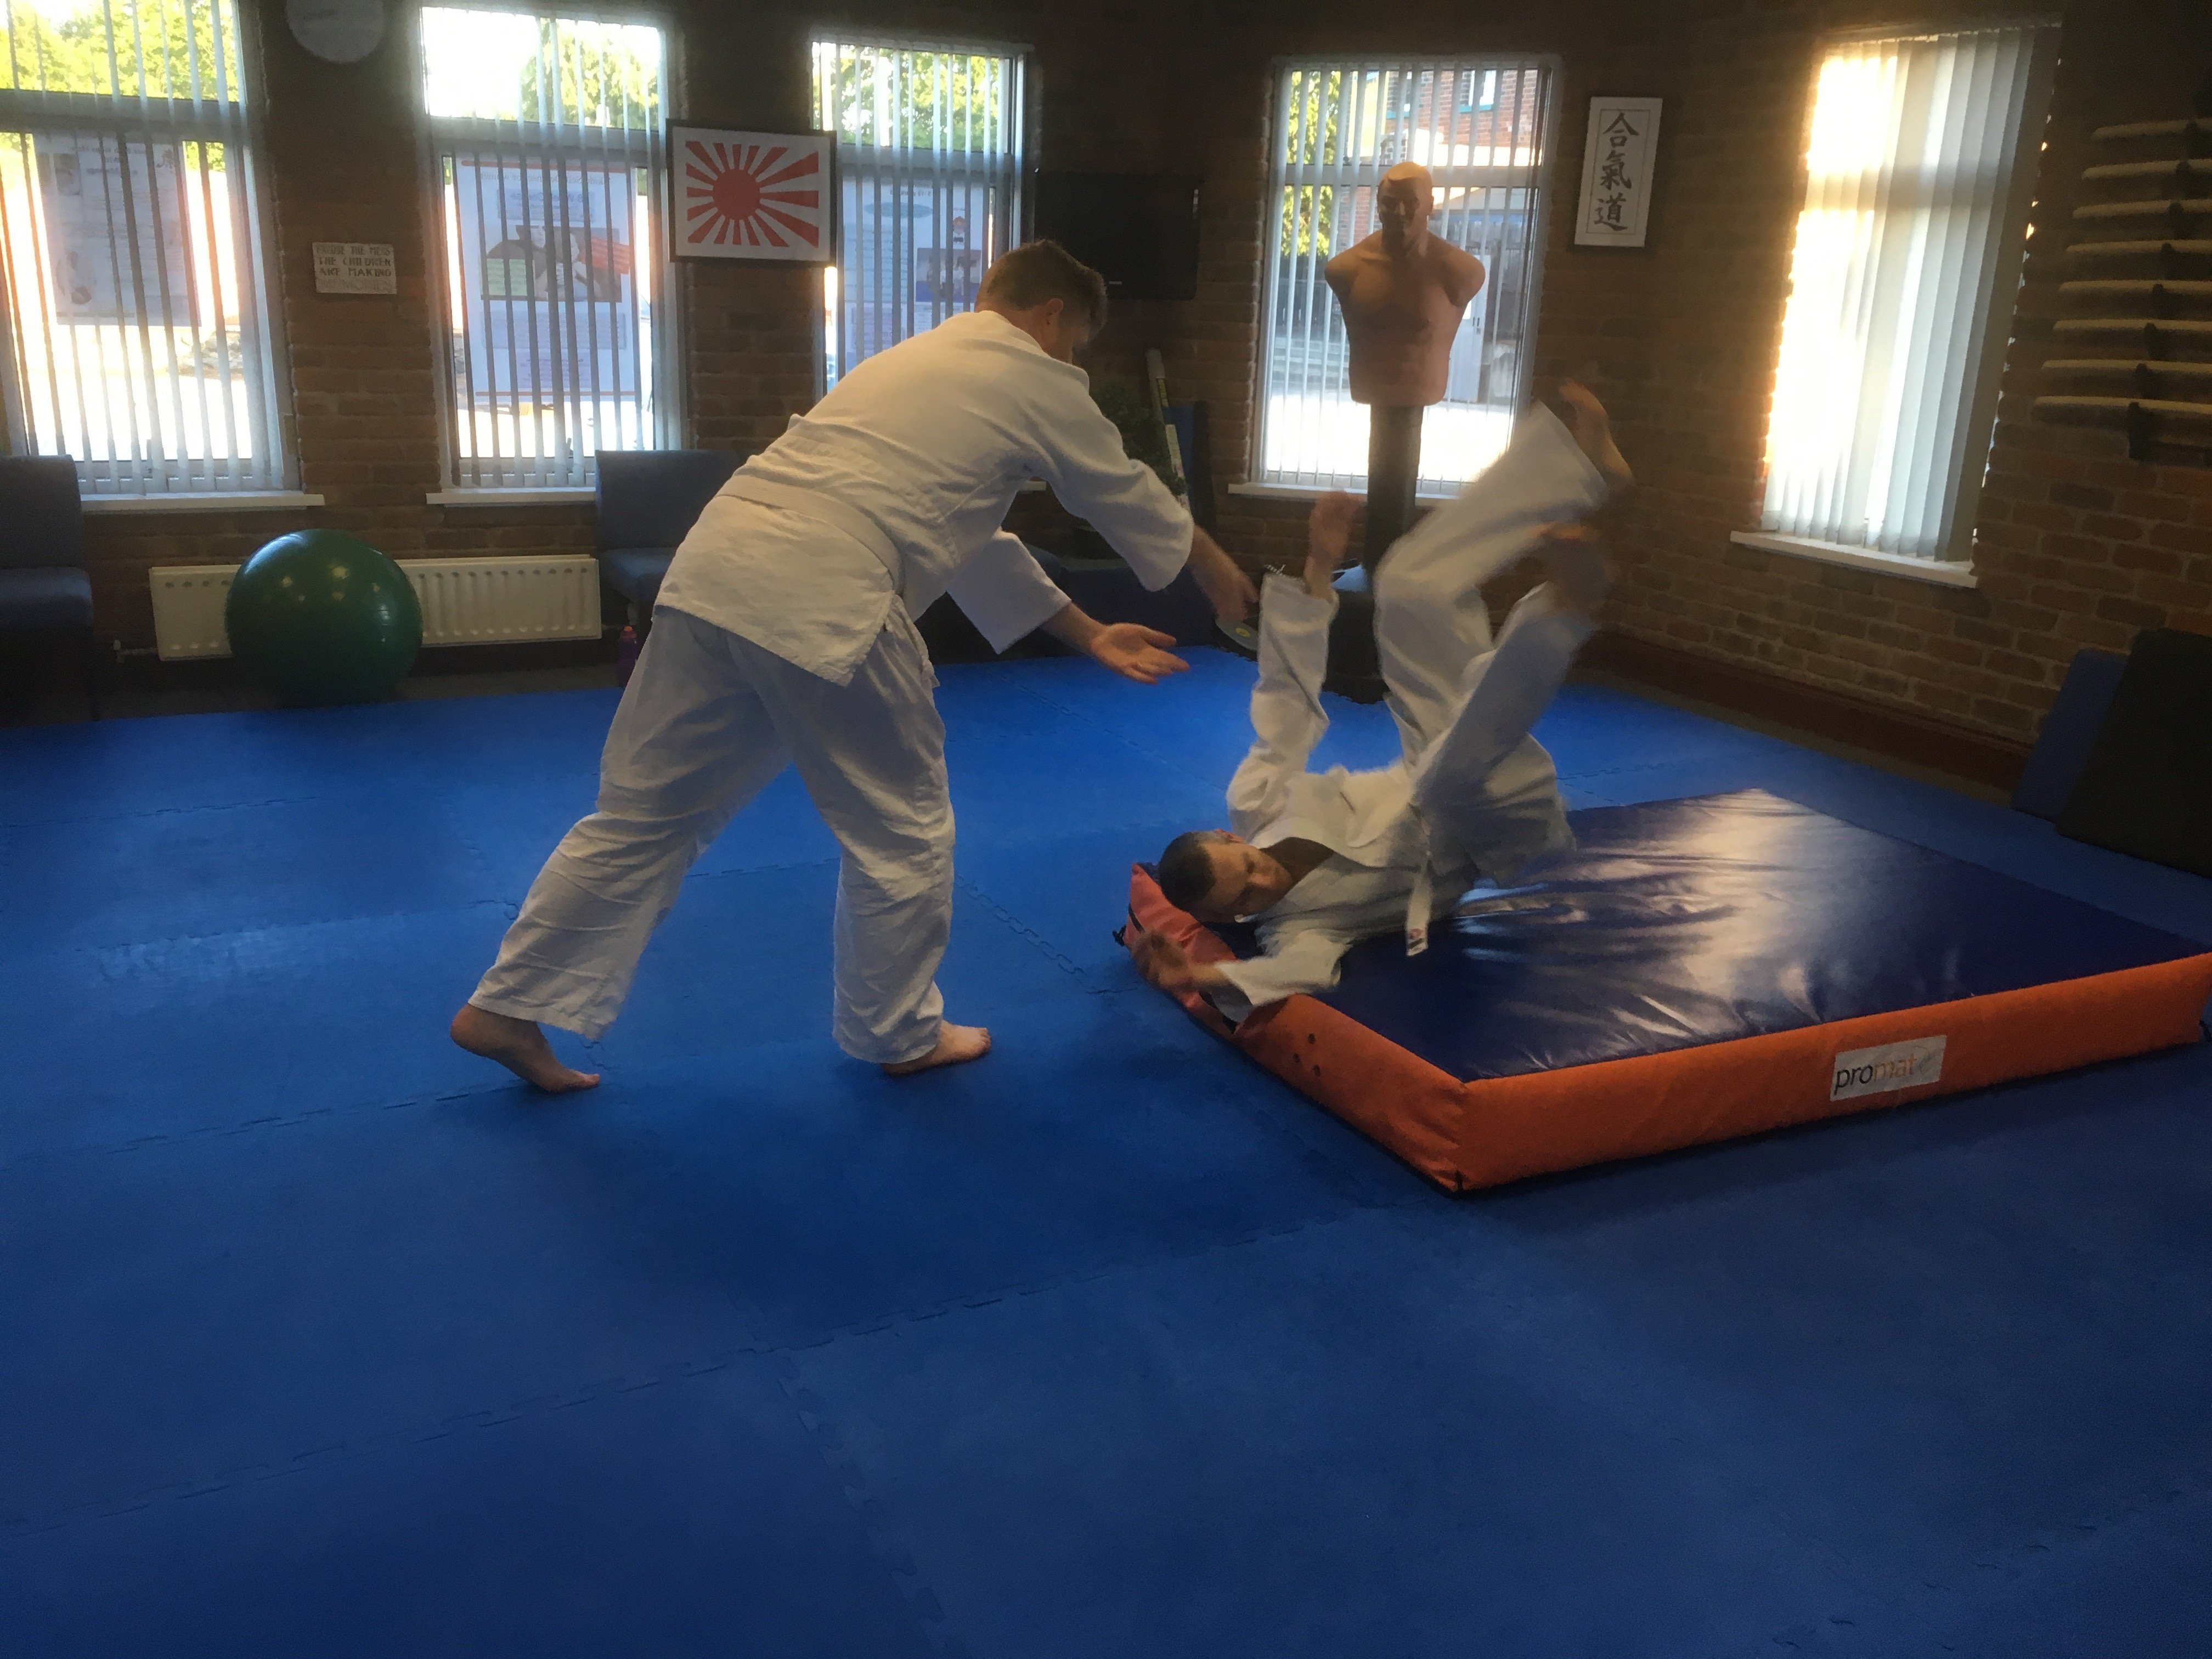 Two Aikido male students learning to fall safely on the crash mat. Martin Acton's Aikido Institute